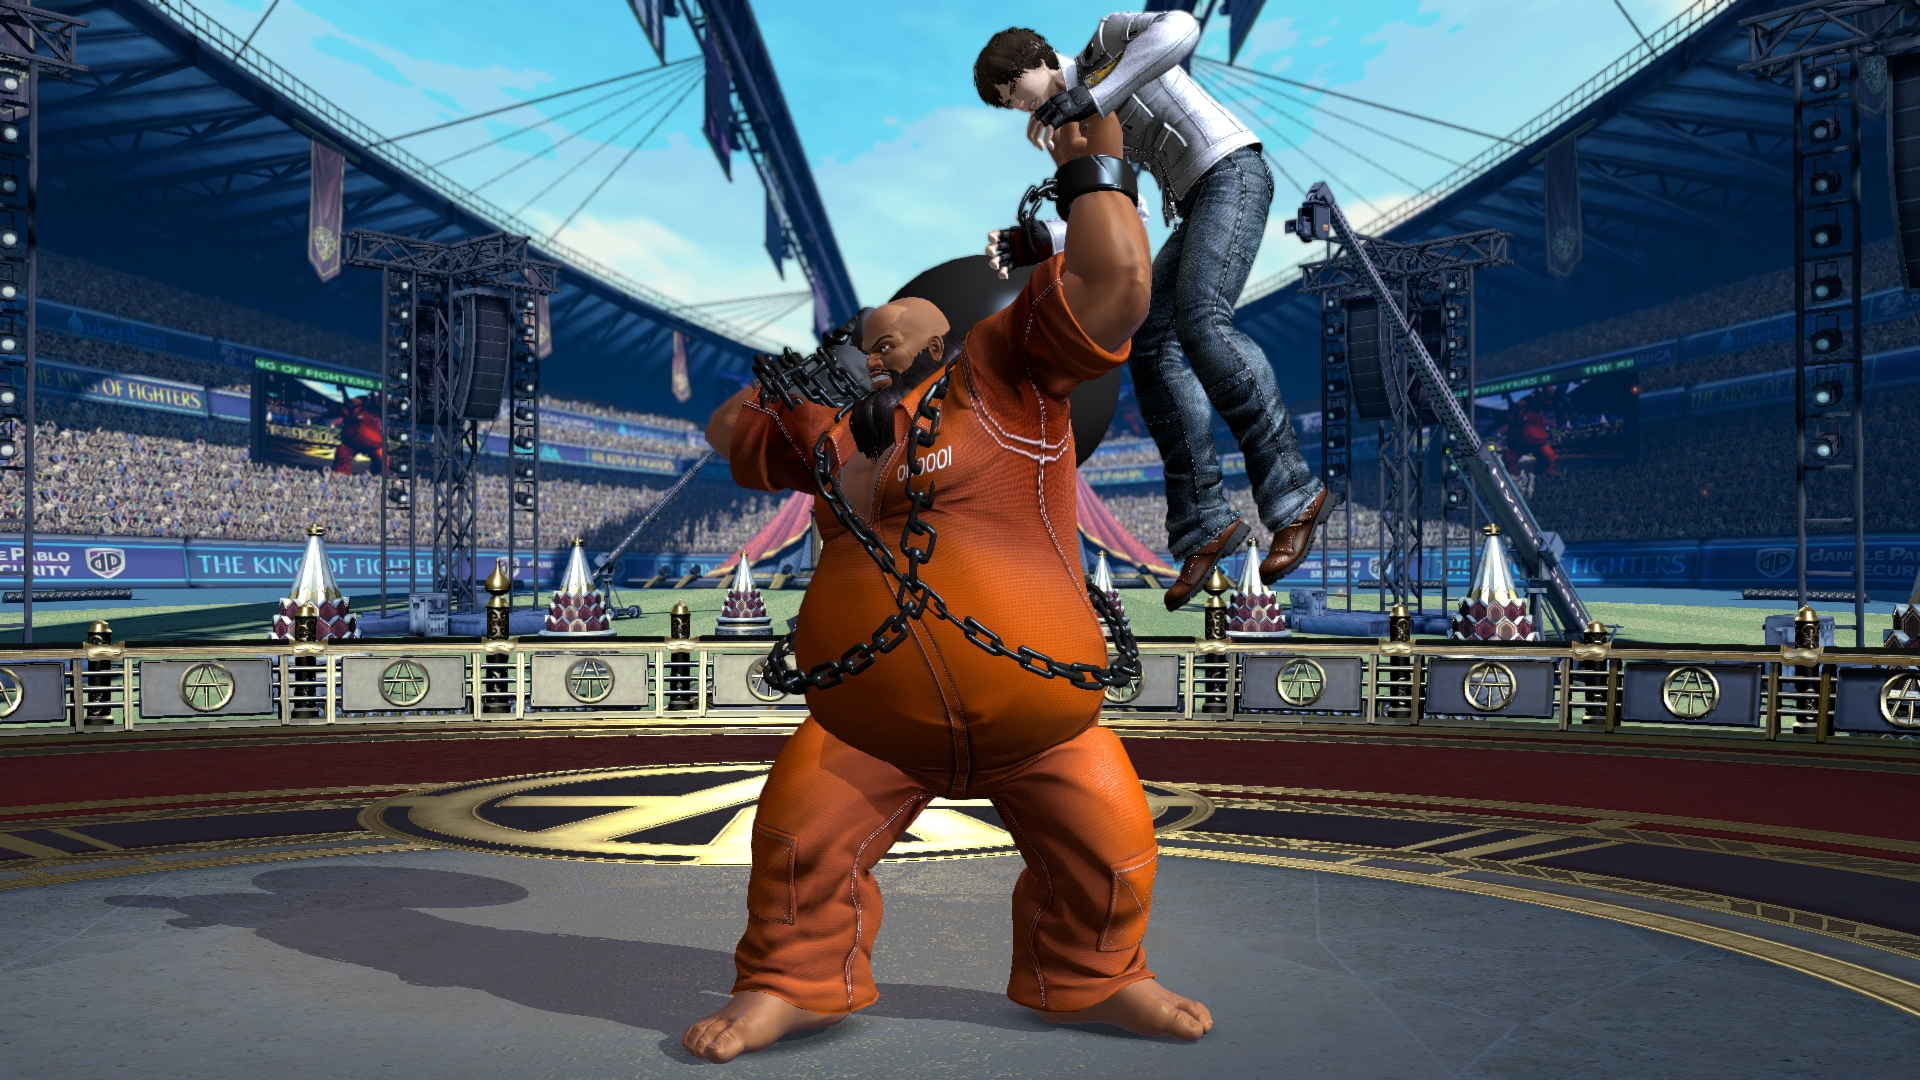 the-king-of-fighters-xiv-image-02_22919132333_o